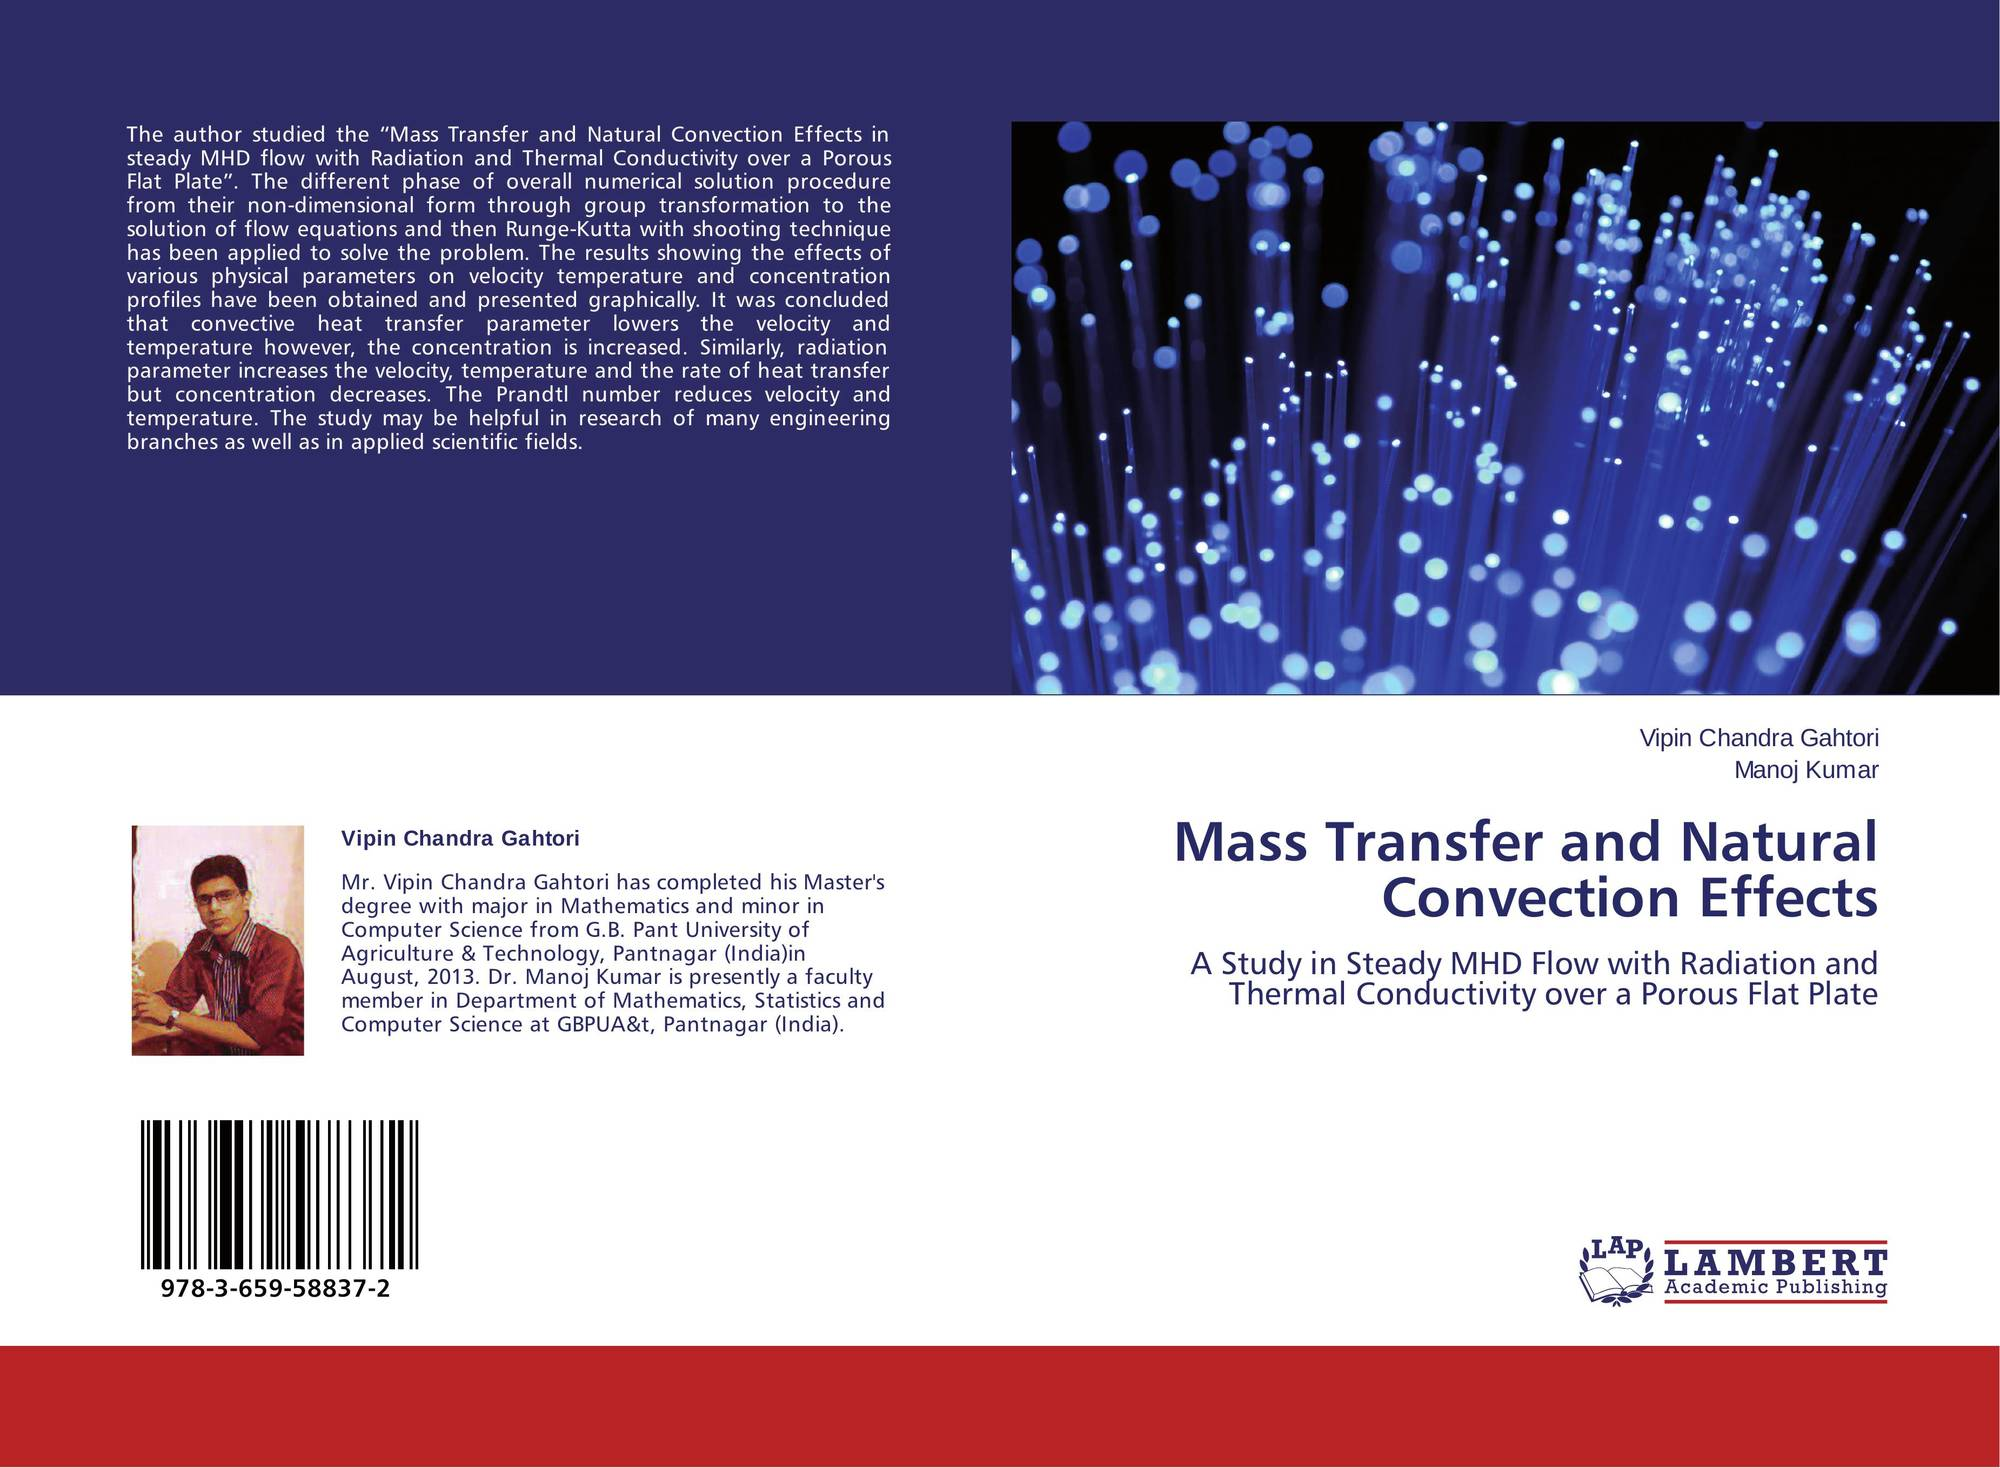 phd thesis in heat and mass transfer Phd thesis phd thesis in heat and mass transfer masters thesis structure for business schools requirements there are no strict formatting requirements but all manuscripts principles of heat transfer in internal combustion engines symposium on convective heat and mass transfer in heat transfer in internal.